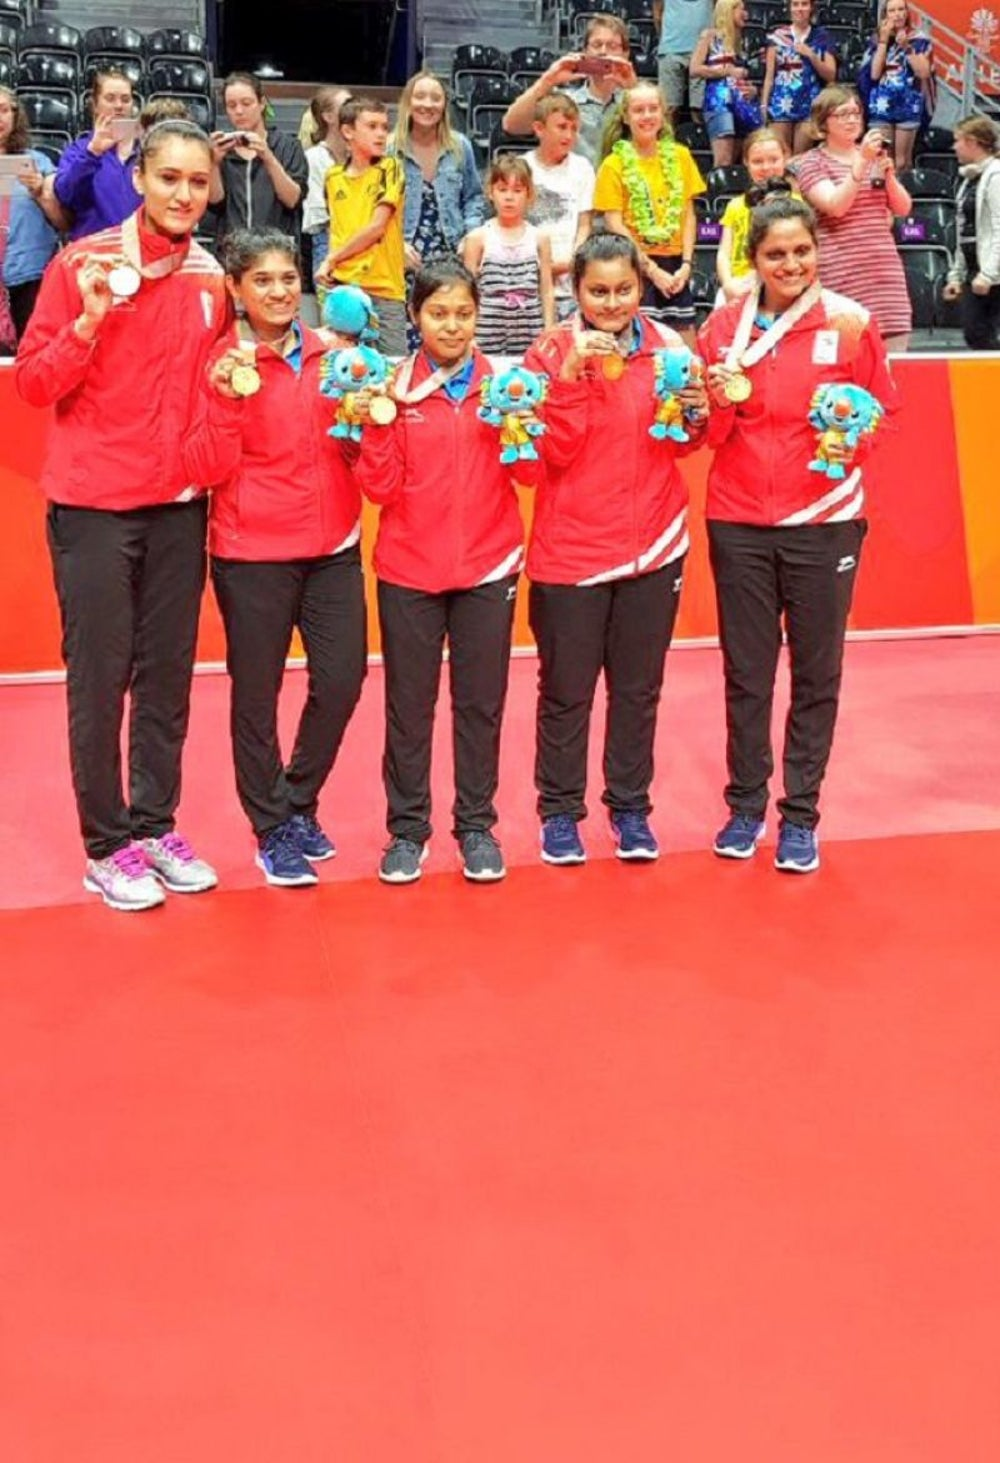 Indian Women TT Team (Manika Batra, Mouma Das, Madhurika Patkar)